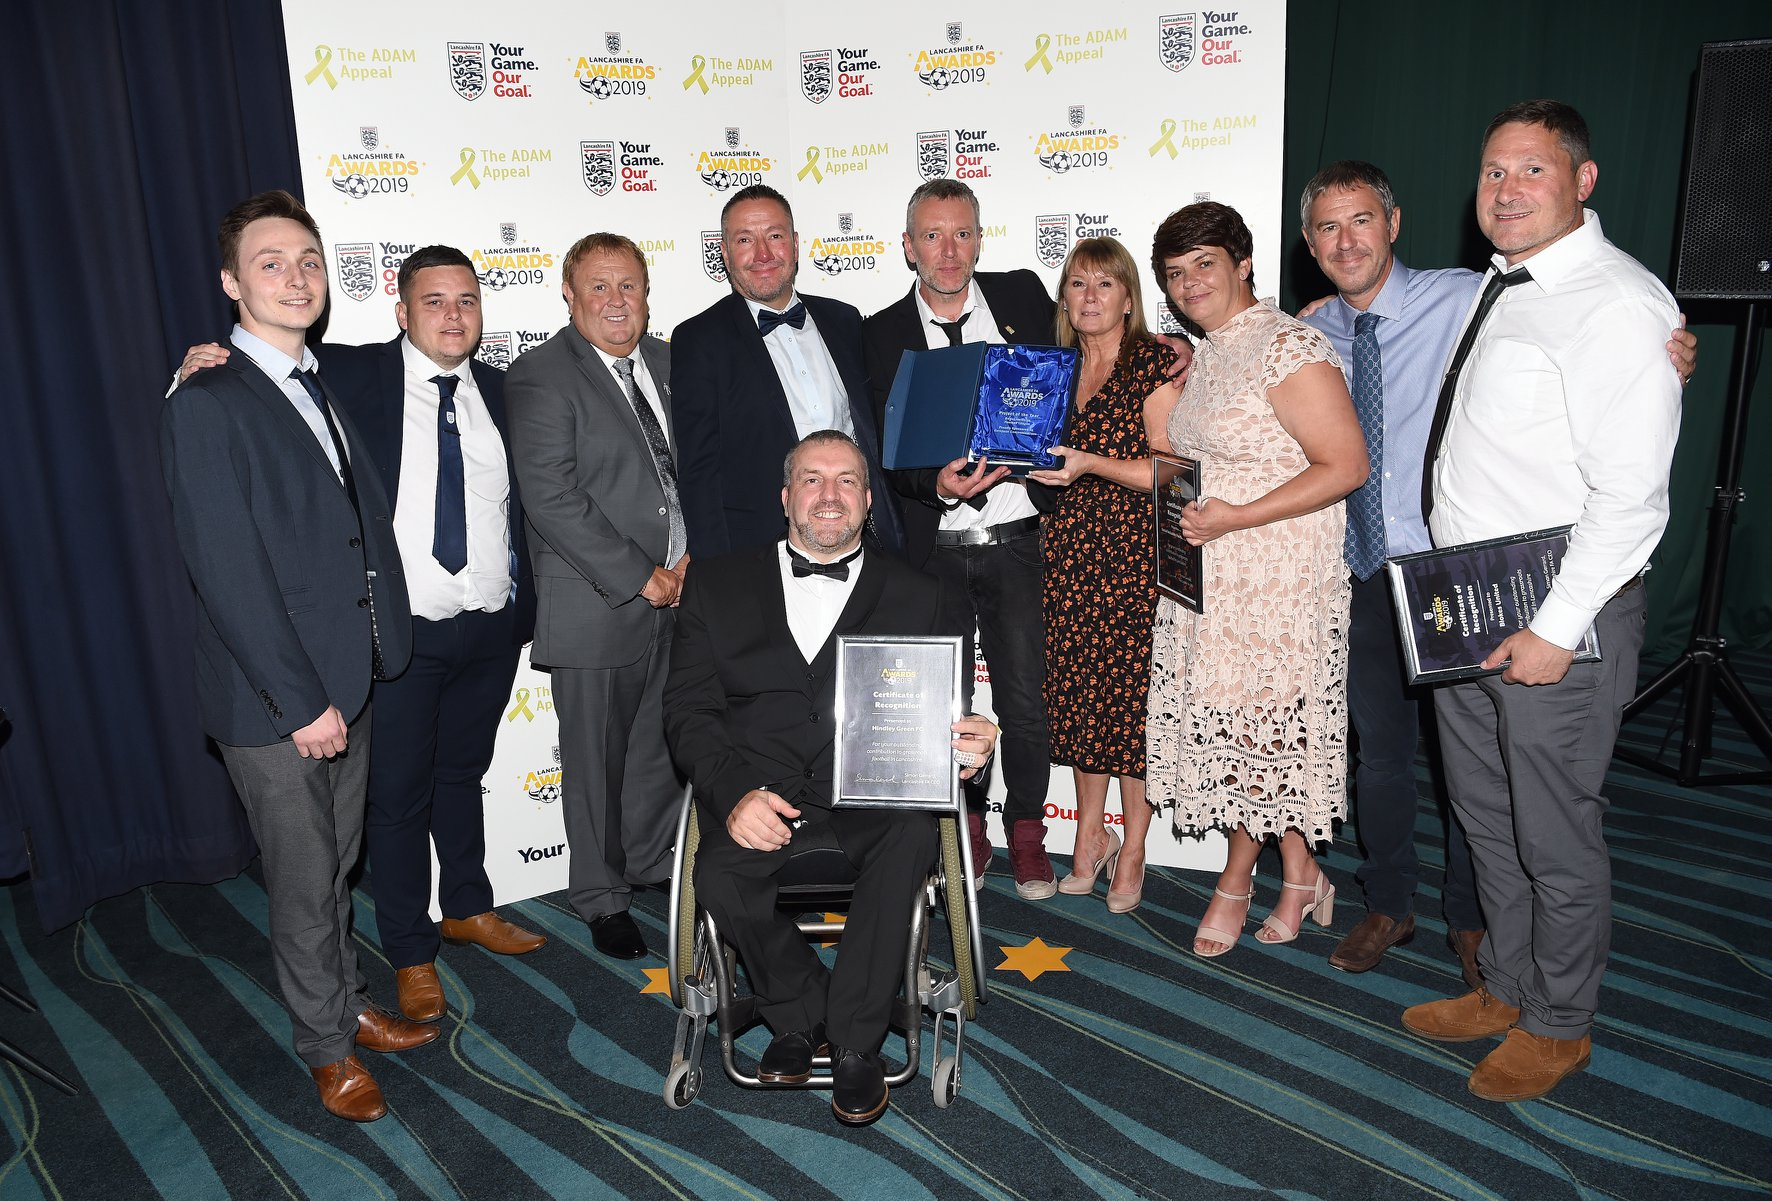 News release – Football league tackling mental health issues wins FA award